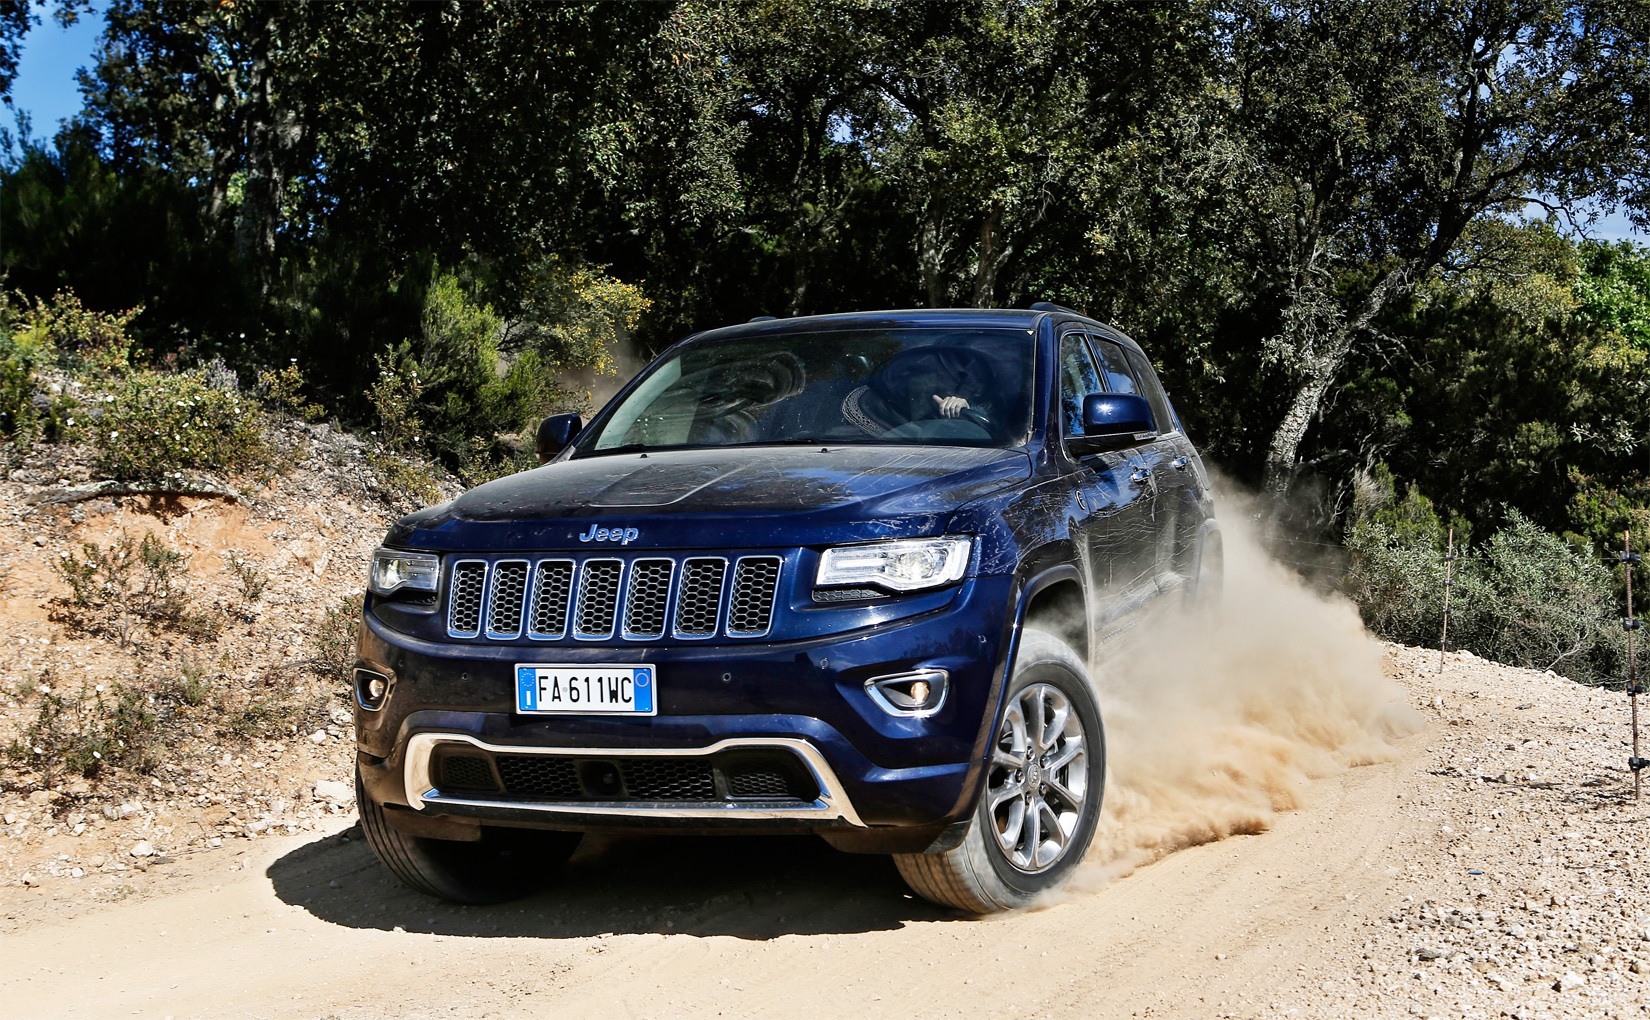 Jeep Grand Cherokee 3.0 V6 CRD Overland Road Test In St.Tropez 7